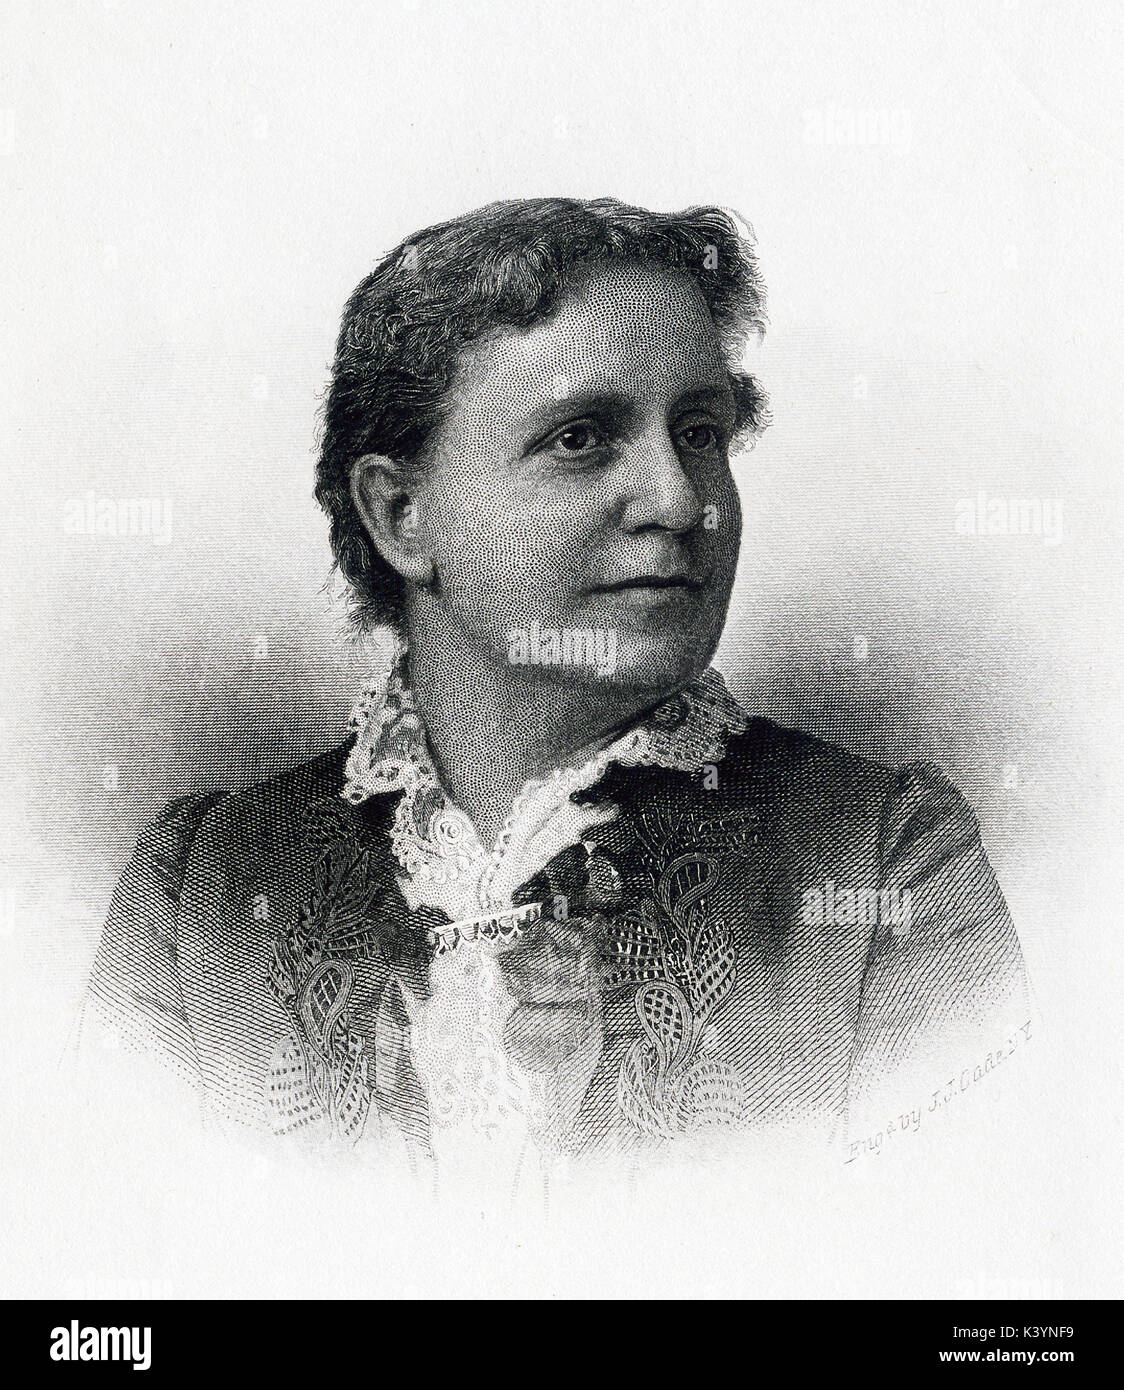 This late 19th-century illustration shows Helen Campbell The caption reads: Yours sincerely, Helen Campbell. It was engraved from a photograph expressly for this work: A.D. Worthington & Co. Publishers. Hartford. Conn. Helen Stuart Campbell (died 1918) was a social reformer, as well as a social reformer, and pioneer in the home economics field. In 1882, she published her book that became quite well know - Problem of the Poor – which was based on her work with the poor in New York City slums, including McAuley's Water Street Mission. - Stock Image